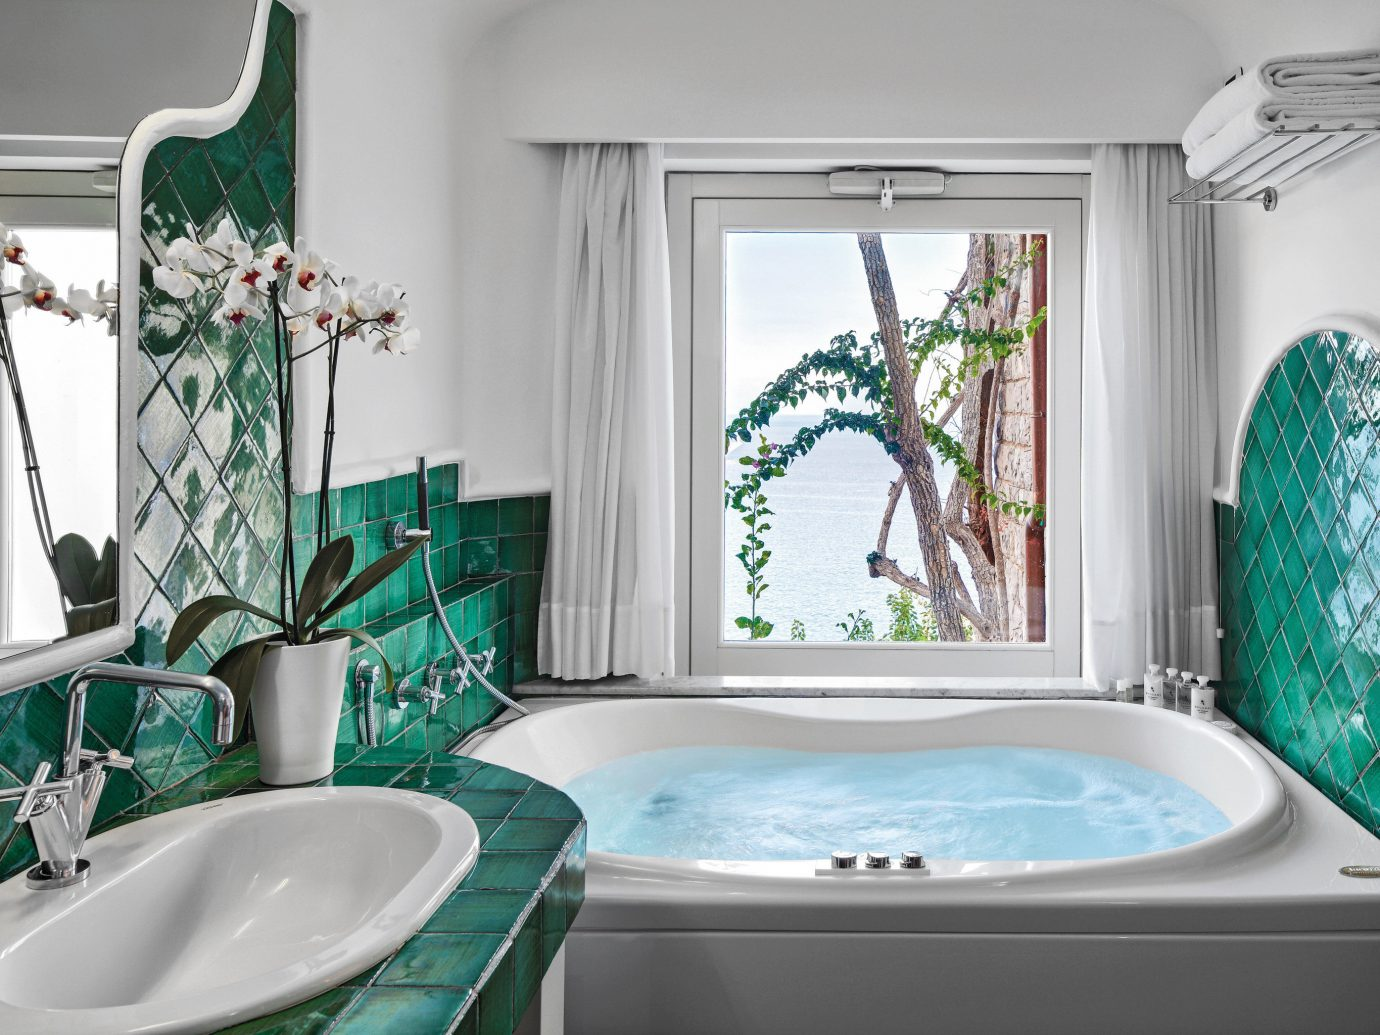 Honeymoon Hotels Luxury Travel Romance wall indoor bathroom room sink green tub bathtub interior design toilet swimming pool home plumbing fixture estate window Bath tiled